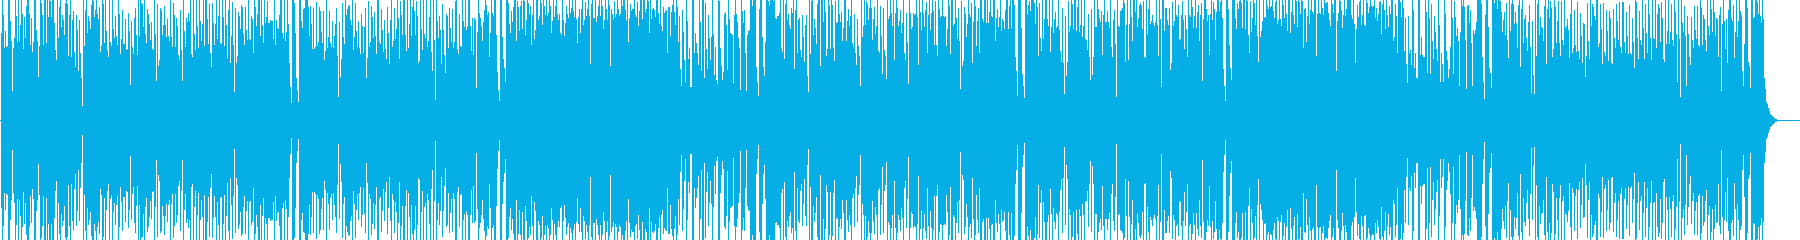 Rhythmic and bright image pops's reproduced waveform